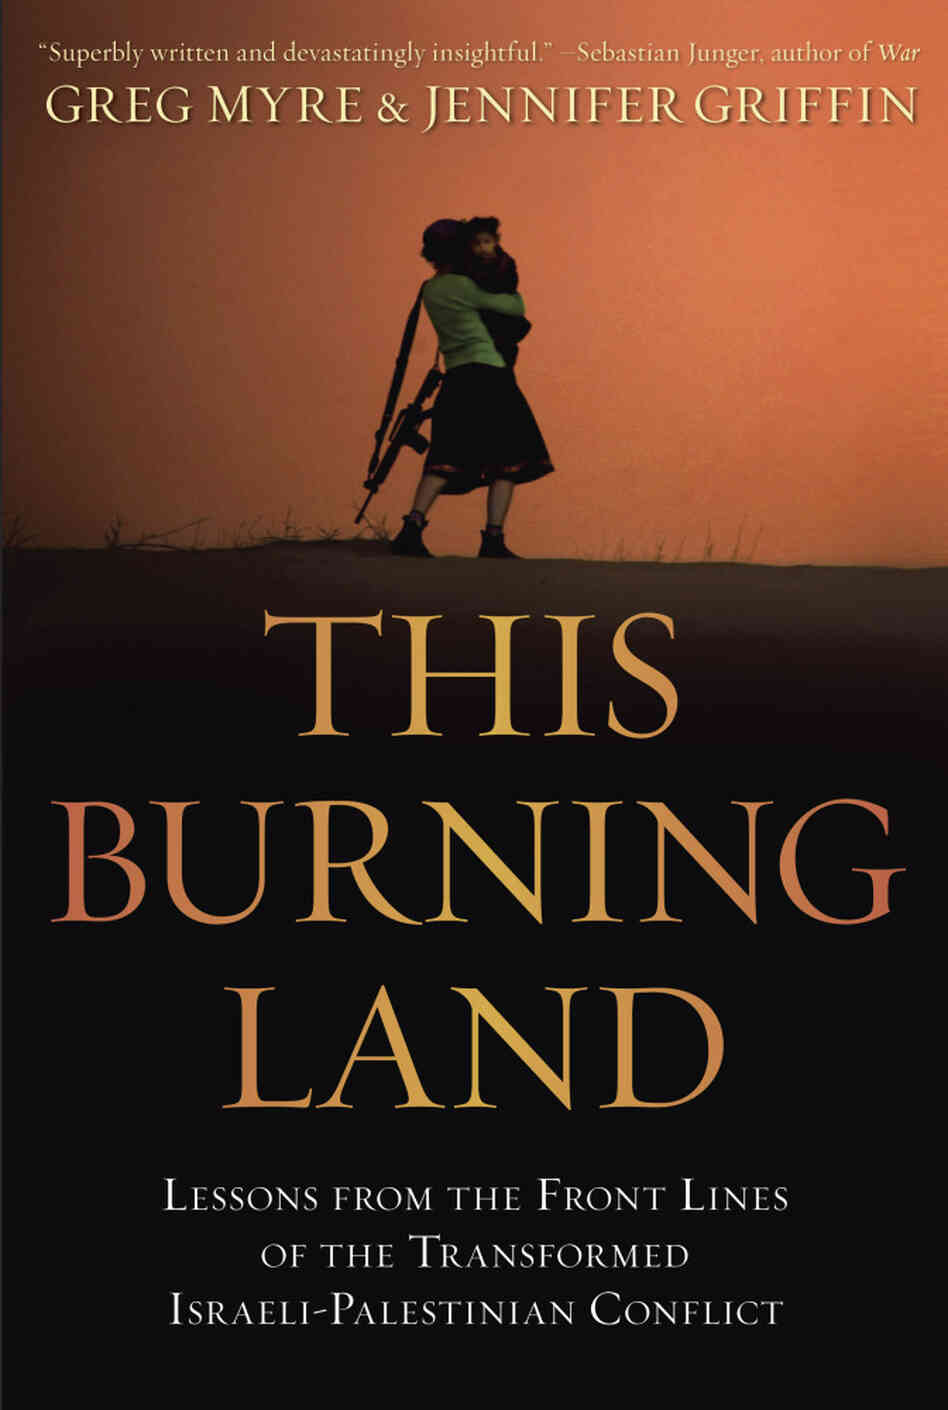 Cover of This Burning Land, by Greg Myre and Jennifer Griffin.